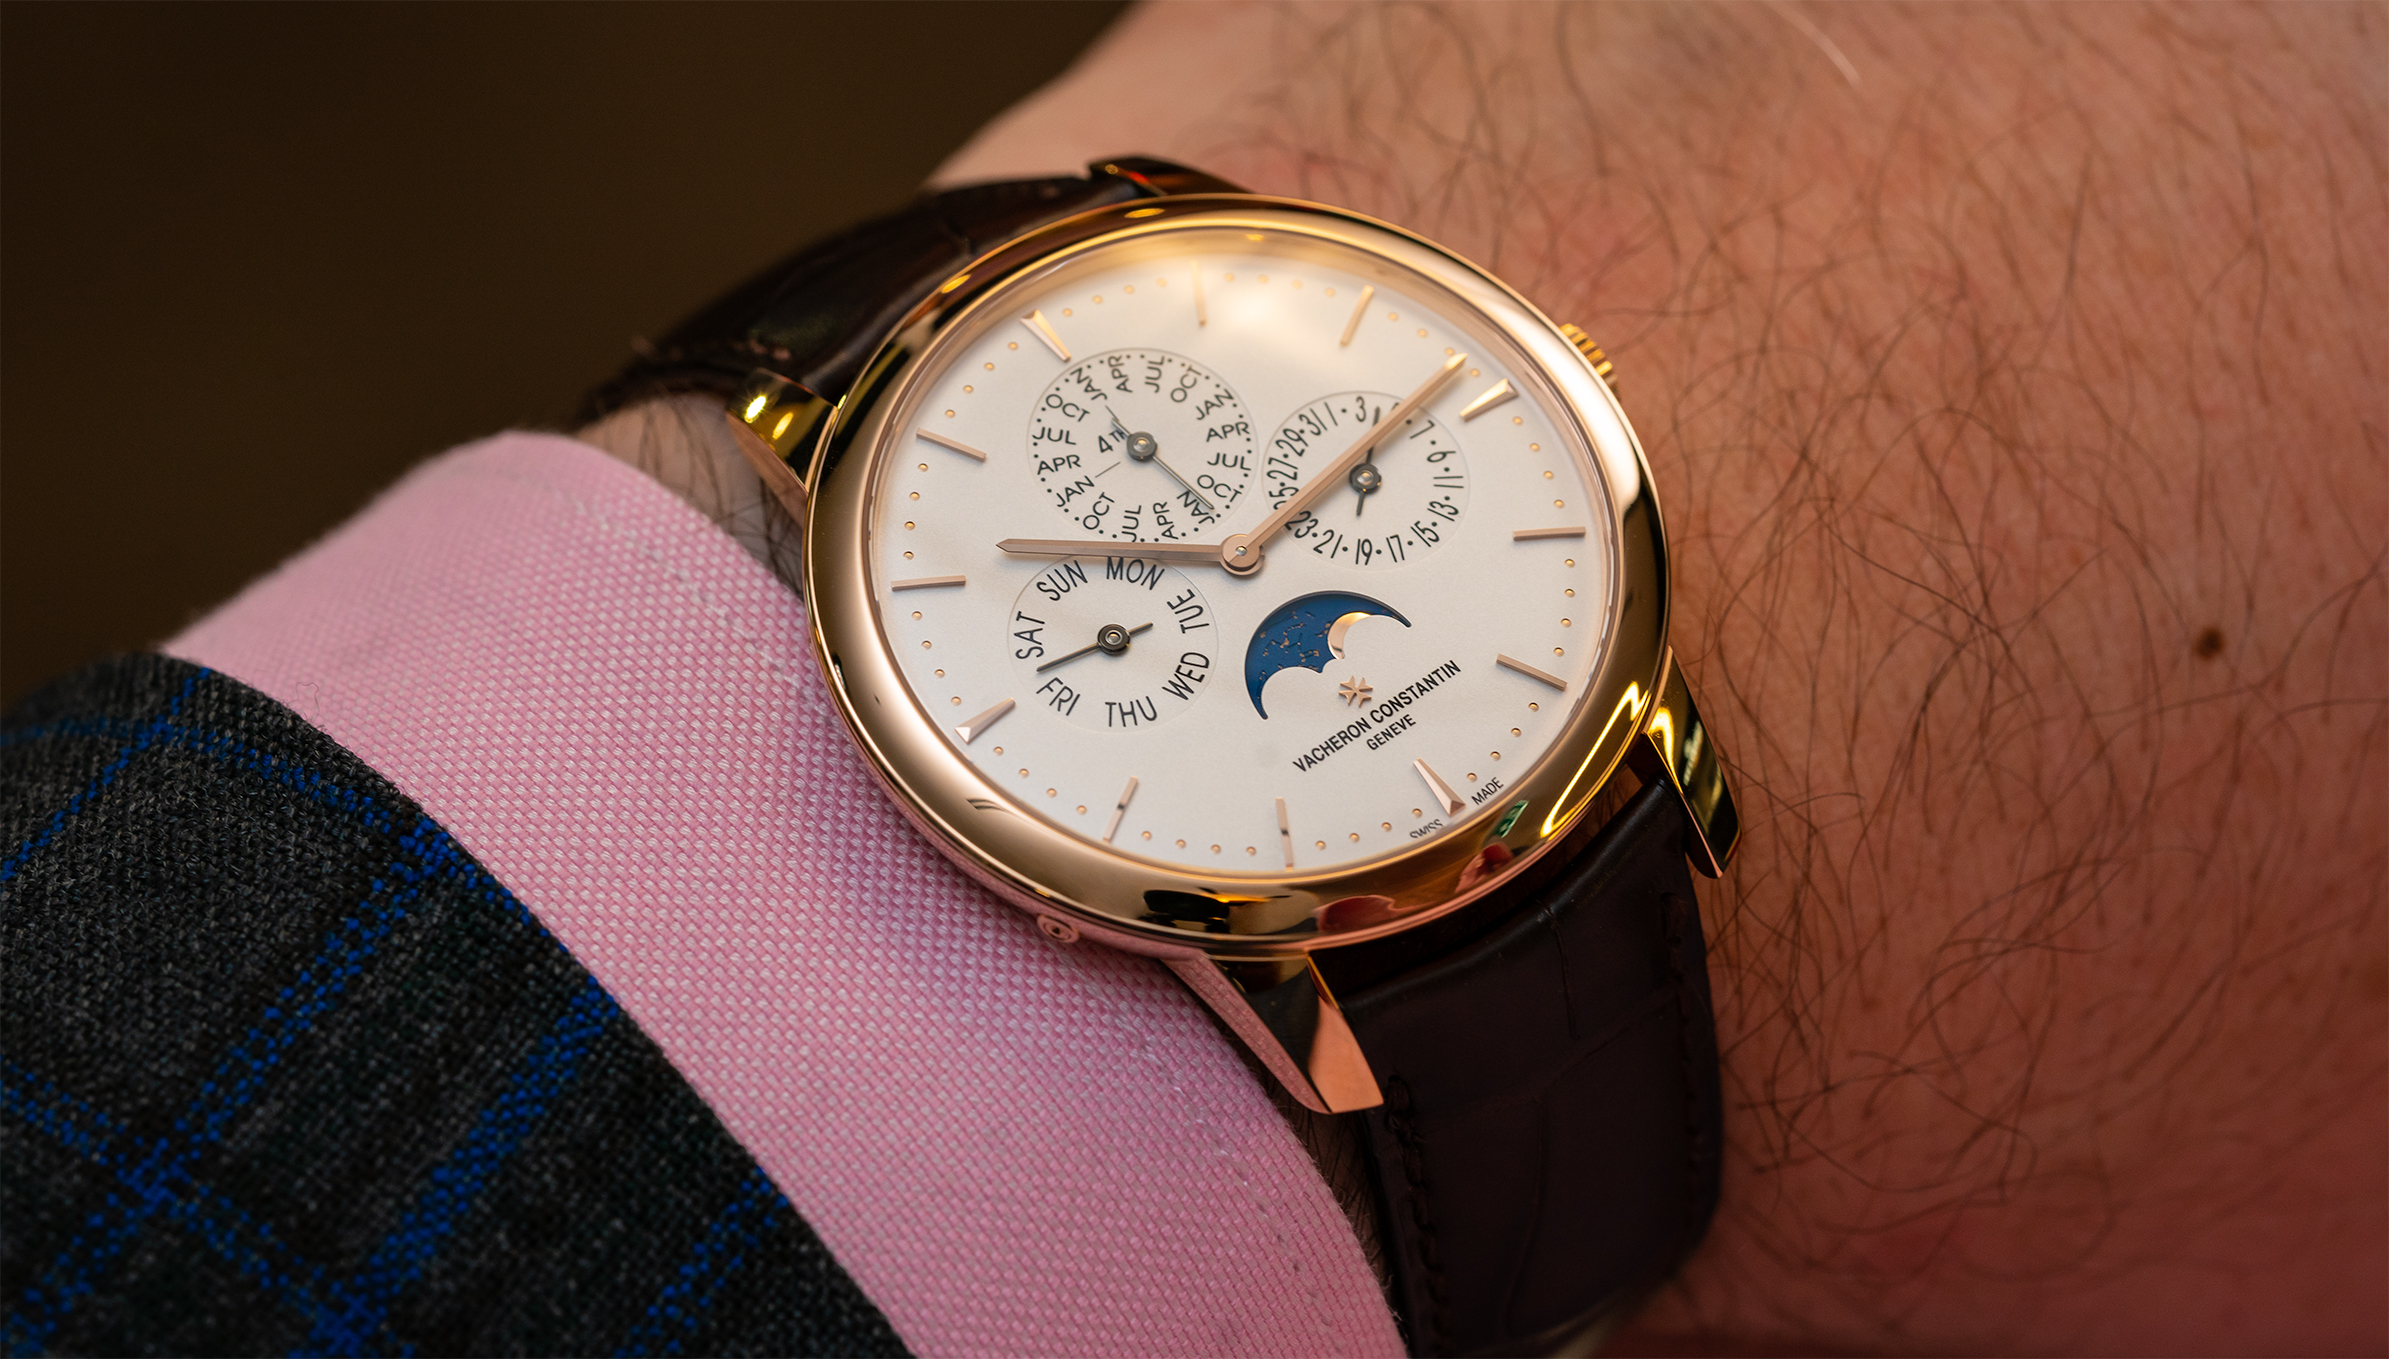 VIDEO: Up close and personal with 3 very complicated Vacheron Constantin  watches | Time and Tide Watches